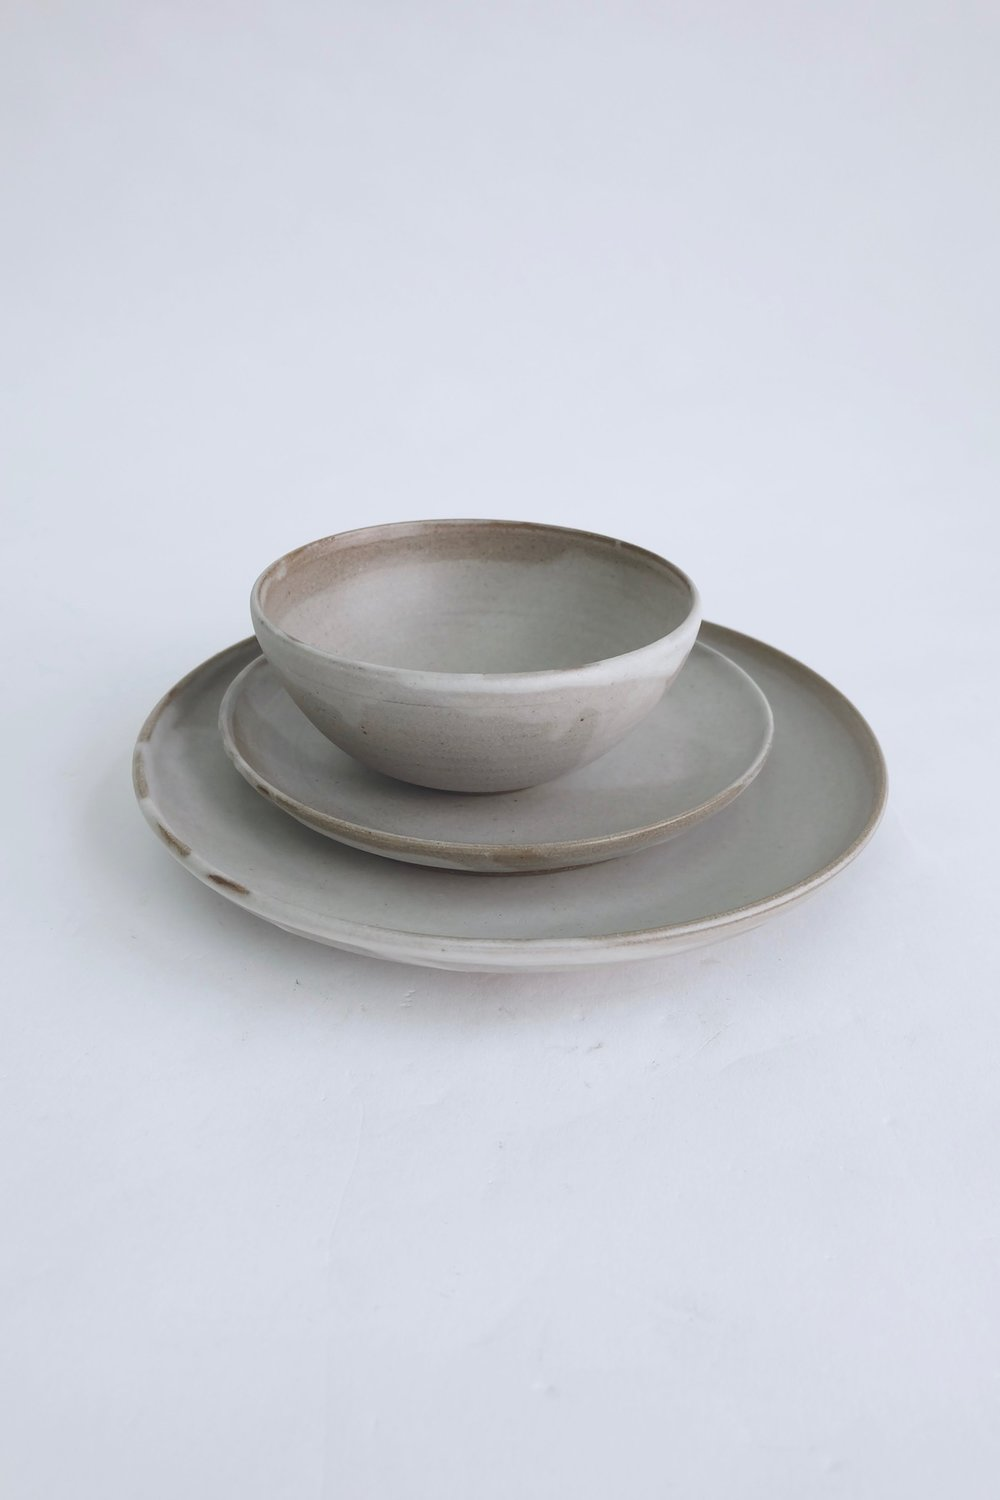 Dinnerware: 3-piece dinnerware for everyday use including a dinner plate, a salad/desert plate, and a soup/cereal bowl. I aimed to create the most versatile pieces that celebrate the warmth and uniqueness of handmade objects. Users can incorporate the pieces into their daily eating by themselves or with plates that users may already own.The neutral grey works well not only with colorful ingredients like beets and greens but also enhances white food items like rice and bread. It comes with a foot and can be used in both casual and dressed-up table setting.